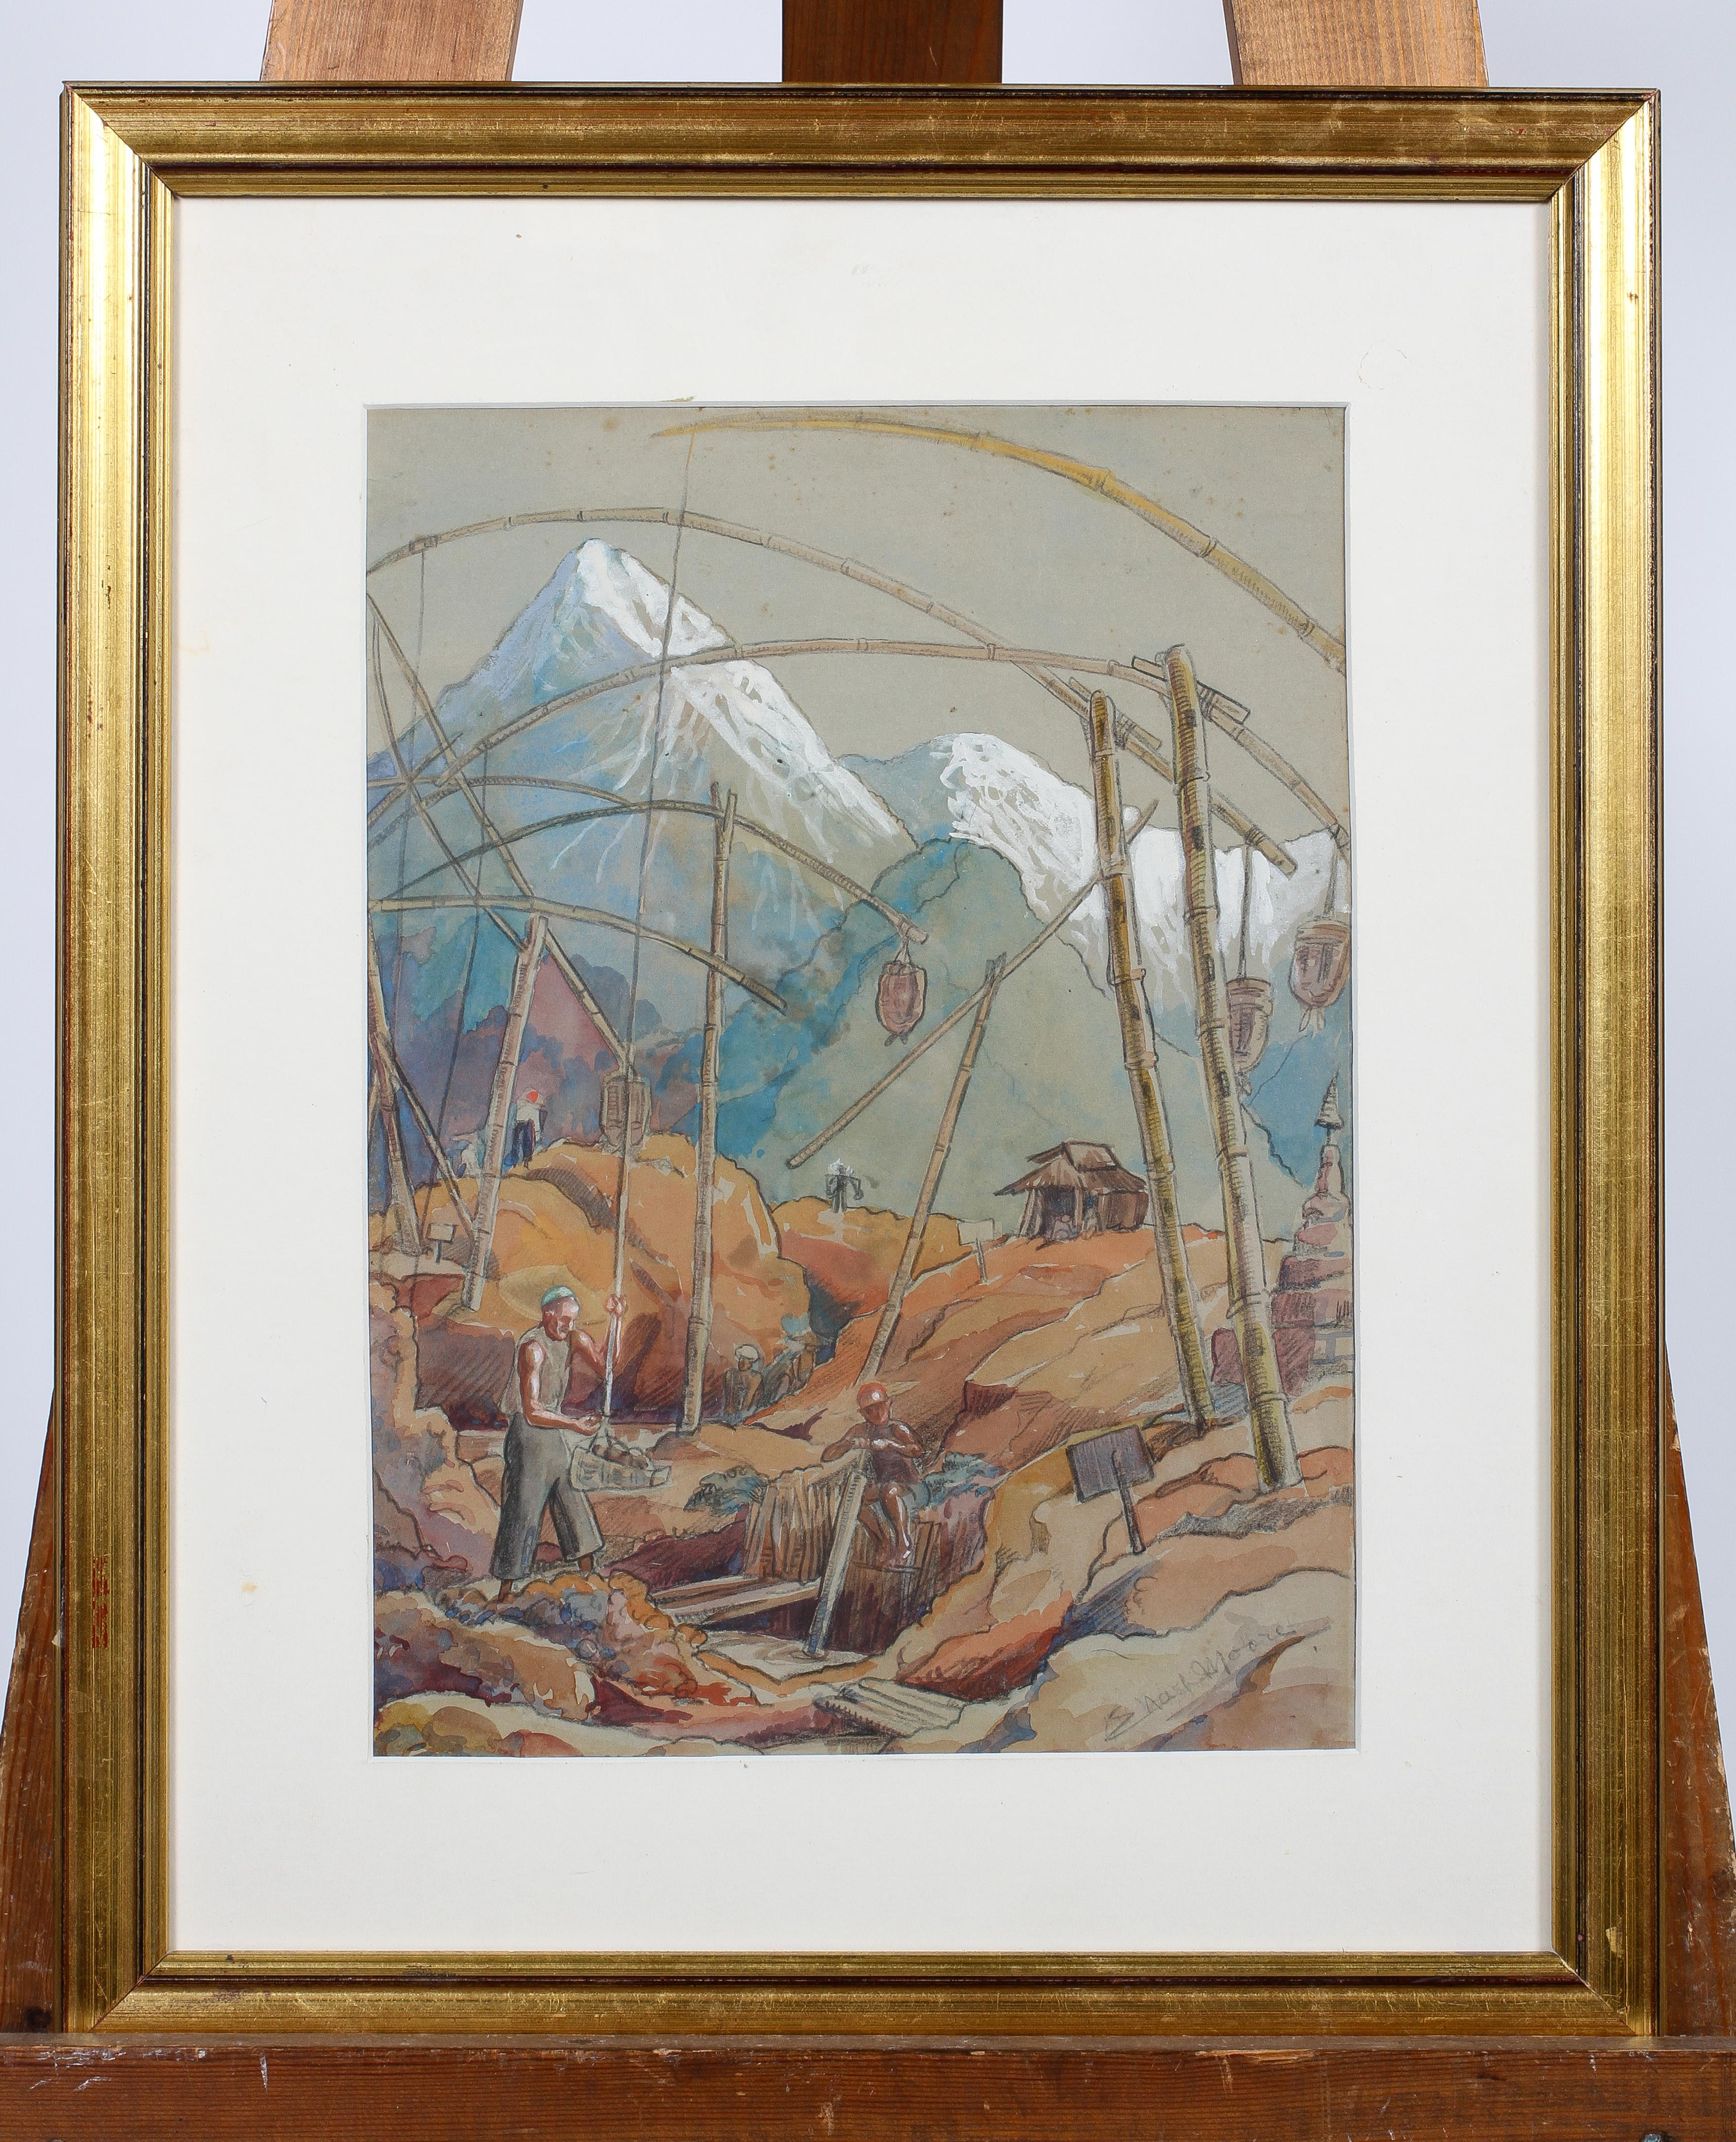 E Nash Moore, pencil and watercolour, Mountainous construction scene, signed lower right, - Image 2 of 4